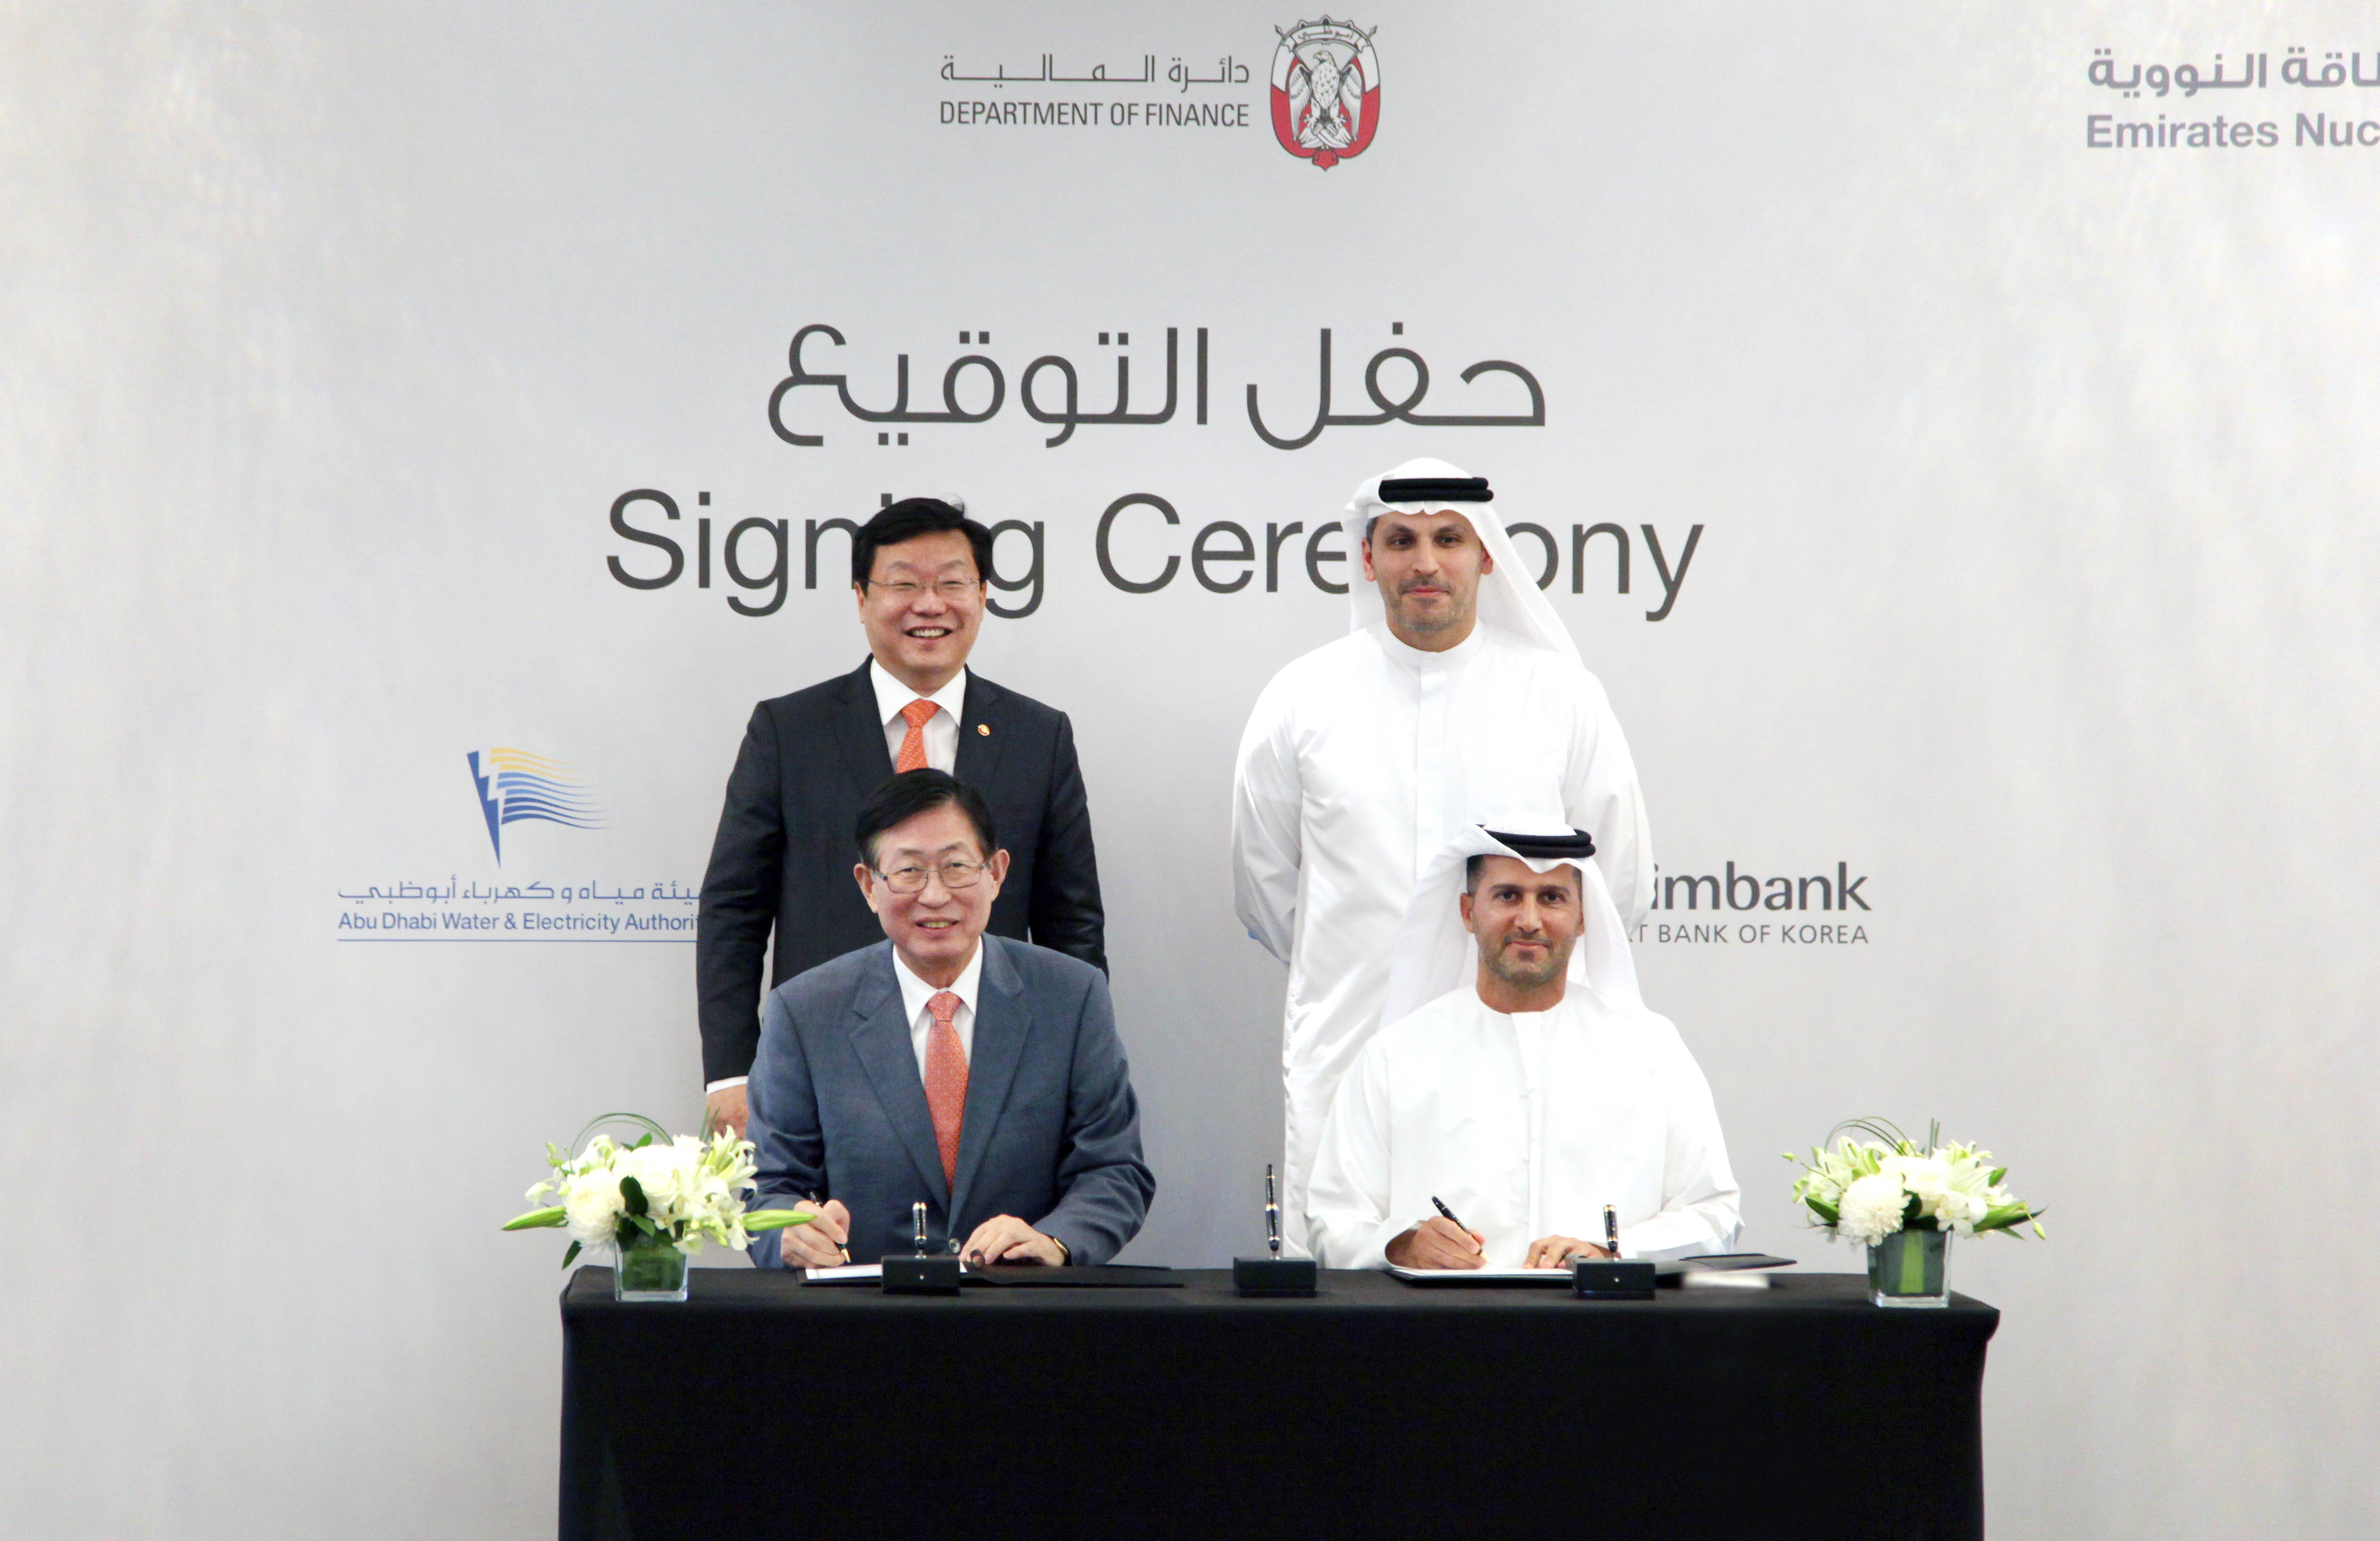 Korea, UAE signs deal to set up JV for Bakarah nuclear plant operation